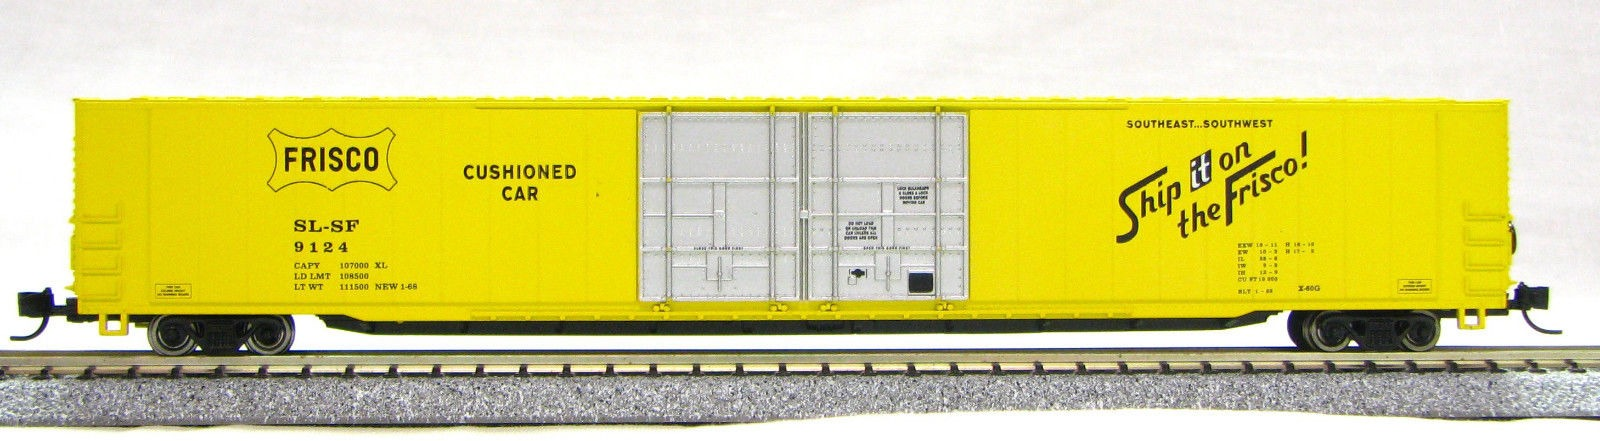 N Scale 4 Door 85 Ft Hi-Cube, Ship on Frisco (with MT couplers) 1-014664